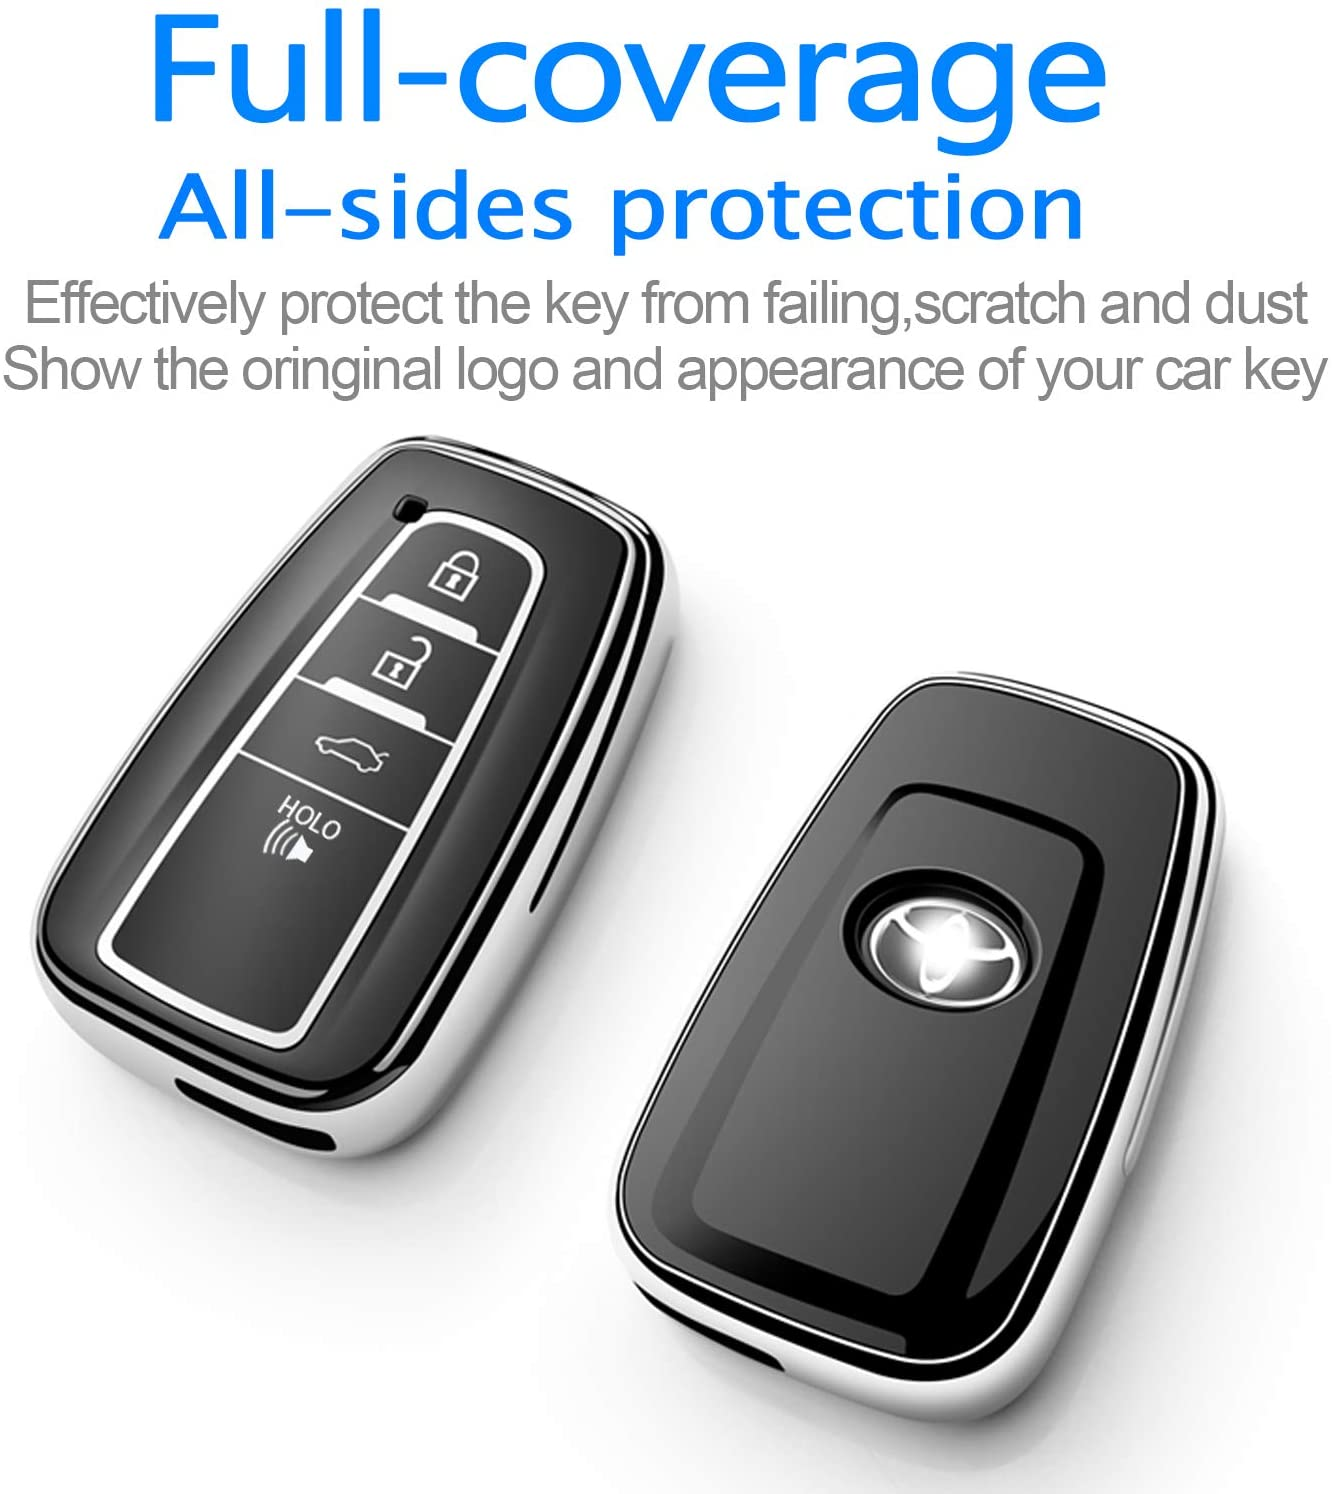 Tukellen for Toyota Key Fob Cover with Keychain Special Soft TPU Key Case Protector Compatible with 2018-2020 Toyota RAV4 Camry Avalon C-HR Prius Corolla only for Keyless go -Blue